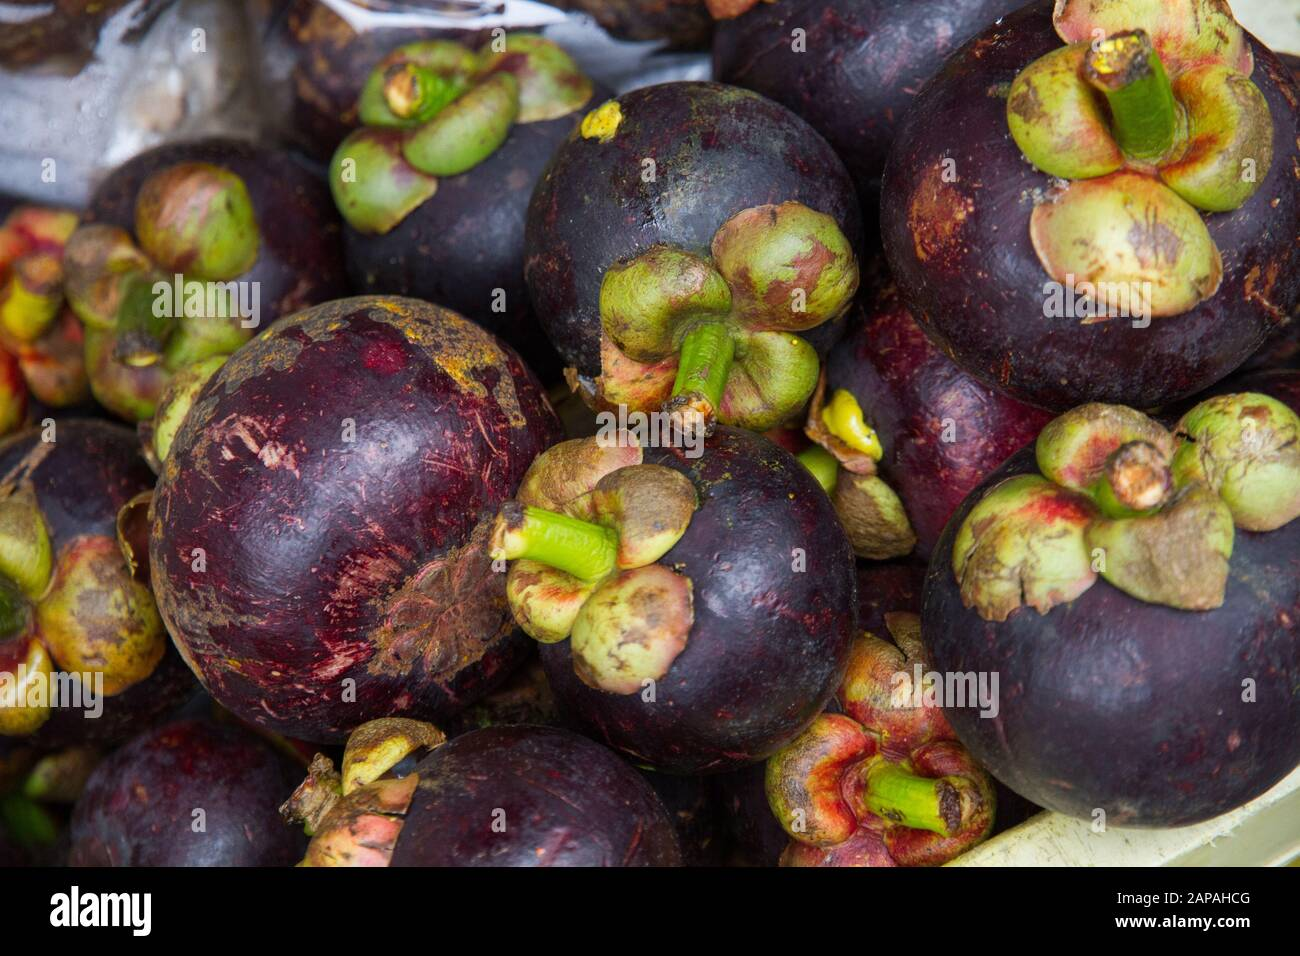 Garcinia Cambogia Fruit High Resolution Stock Photography And Images Alamy